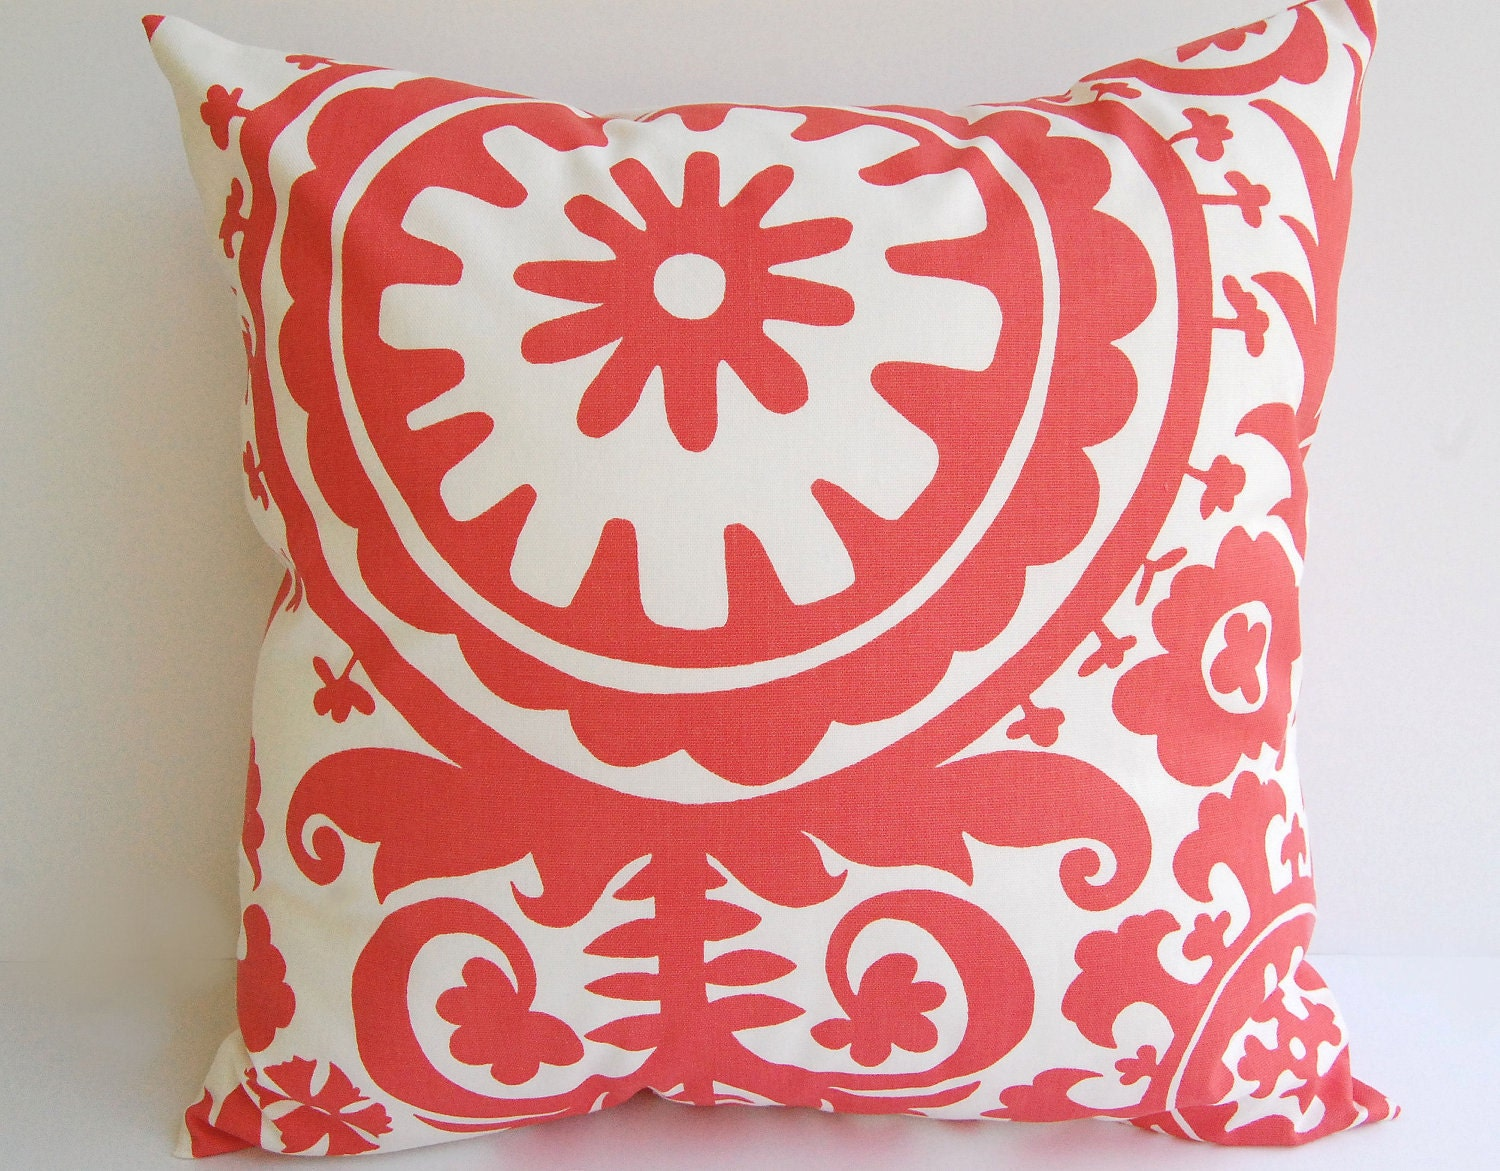 Throw Pillows Coral : Coral throw pillow cover one 16 x 16 coral and by ThePillowPeople